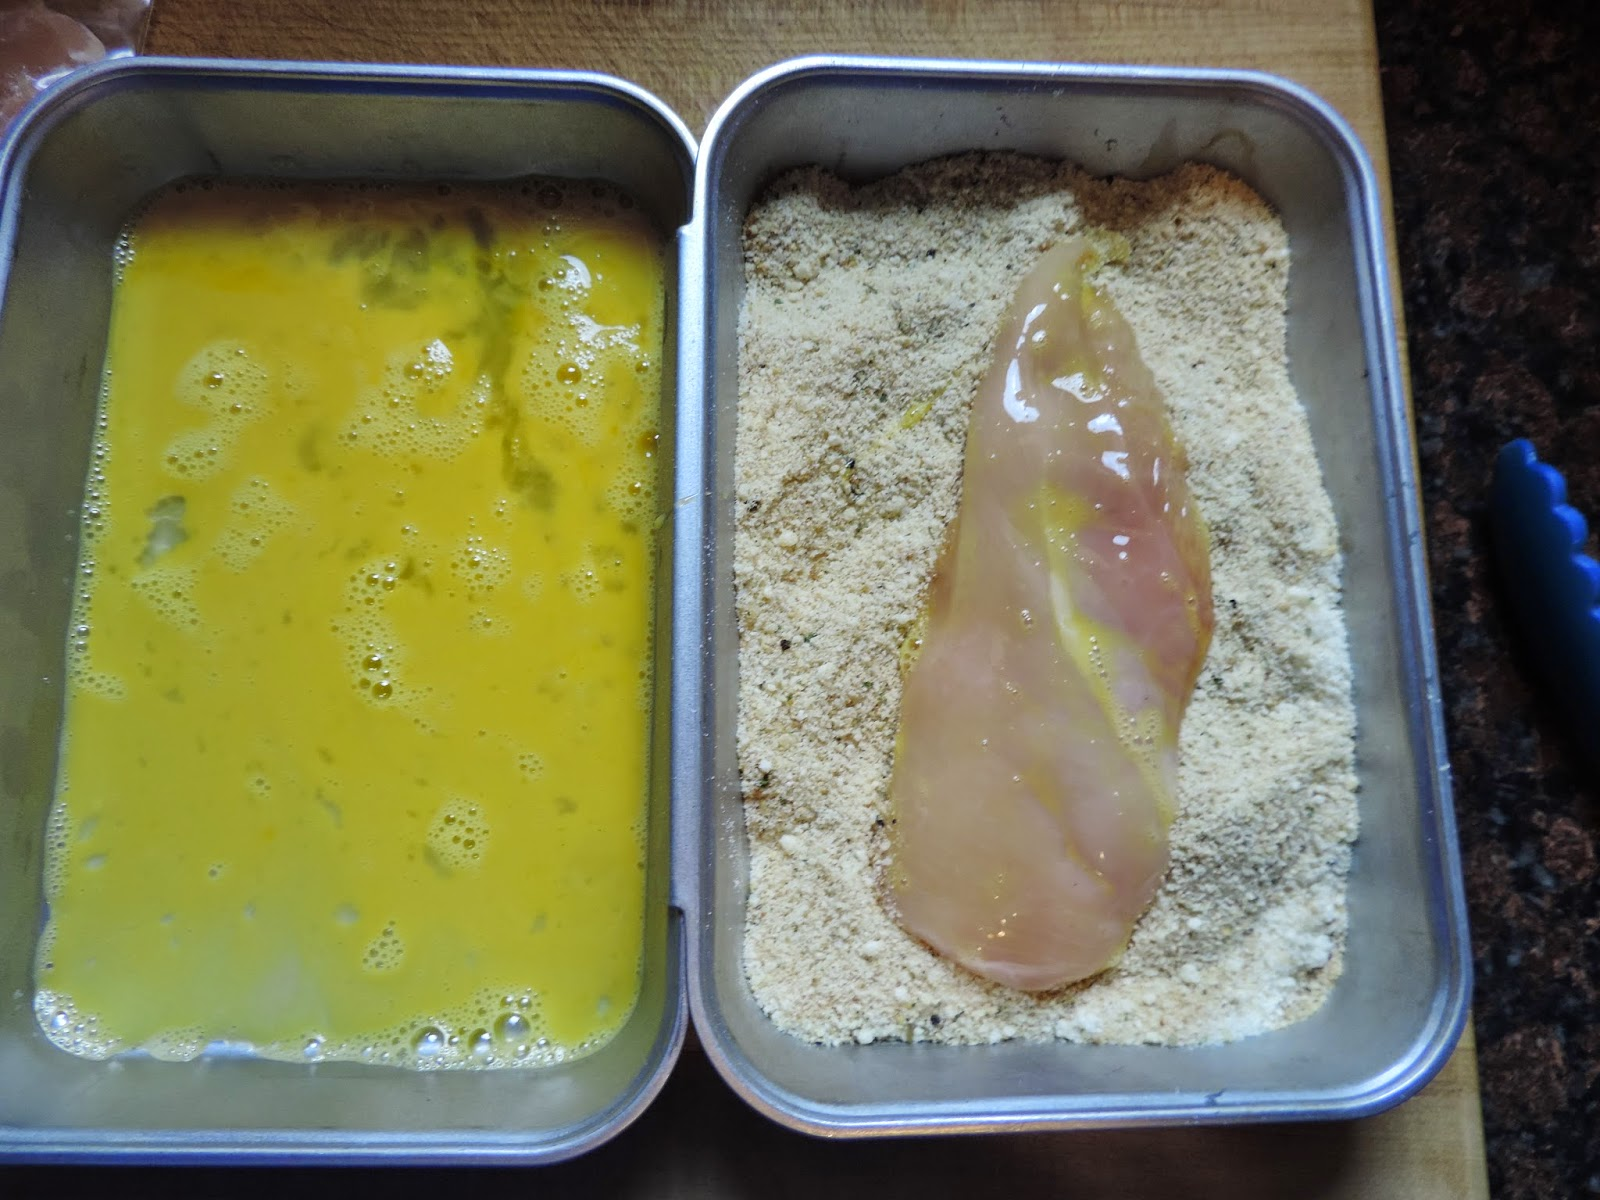 The chicken cutlet being added to the flour mixture.